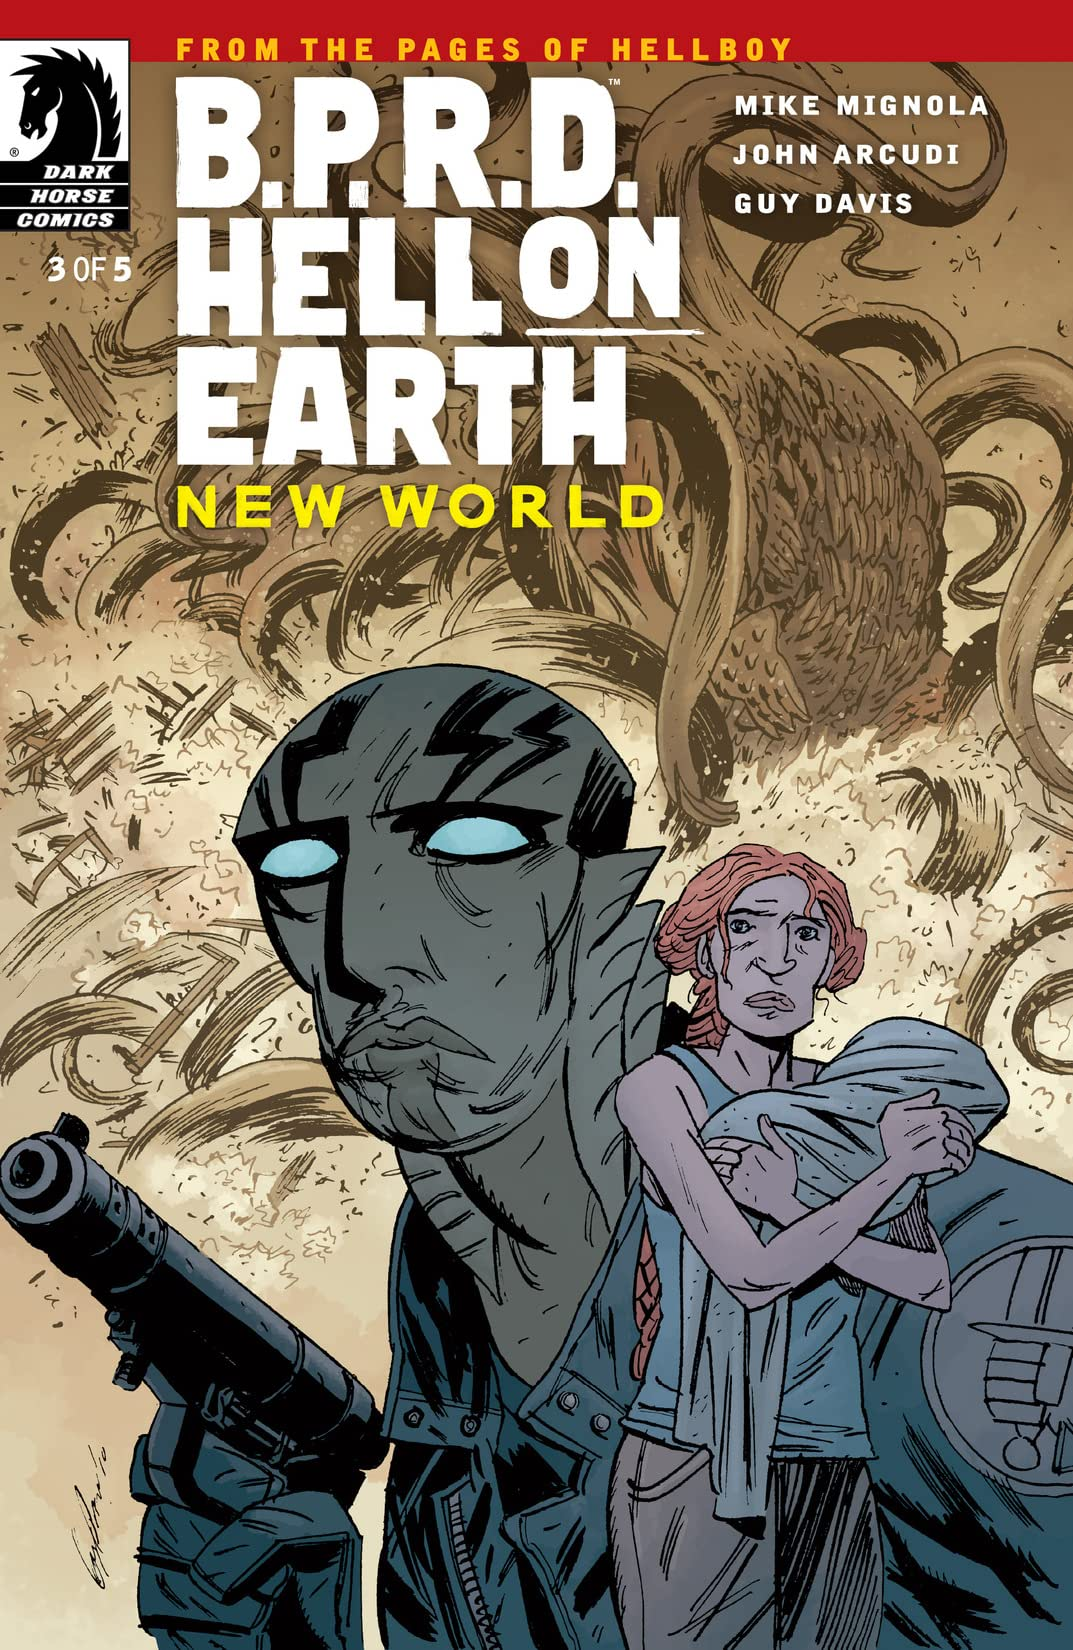 B.P.R.D. Hell on Earth: New World #3